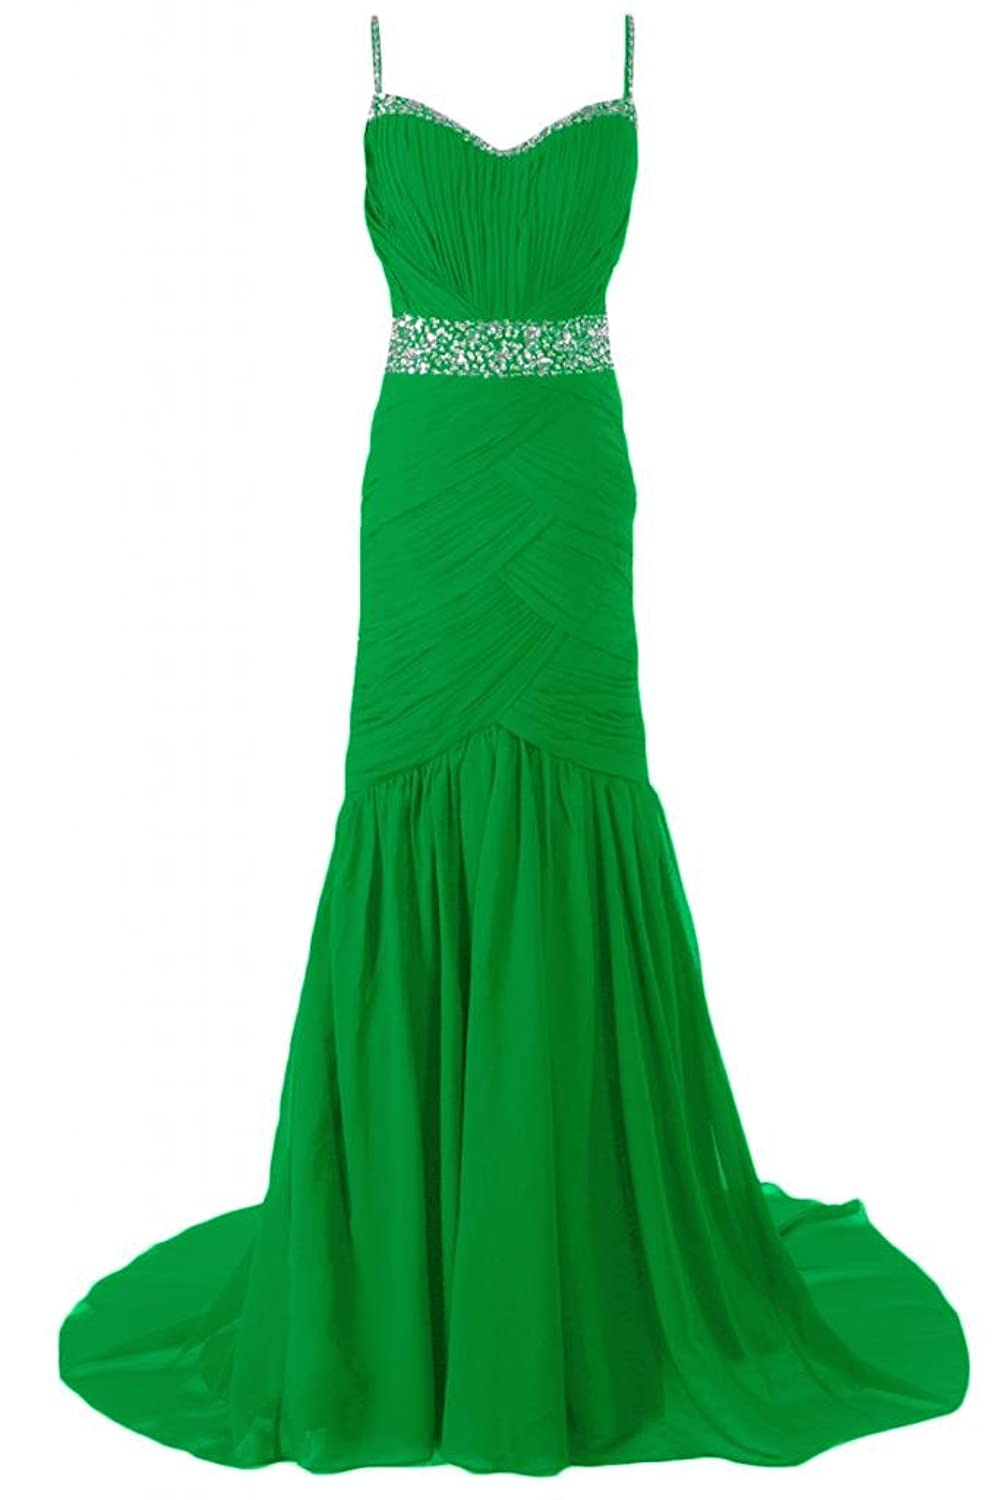 Sunvary Romantic Spaghetti Straps Prom Dress Long Party Evening Dresses Pageant Formal Dress